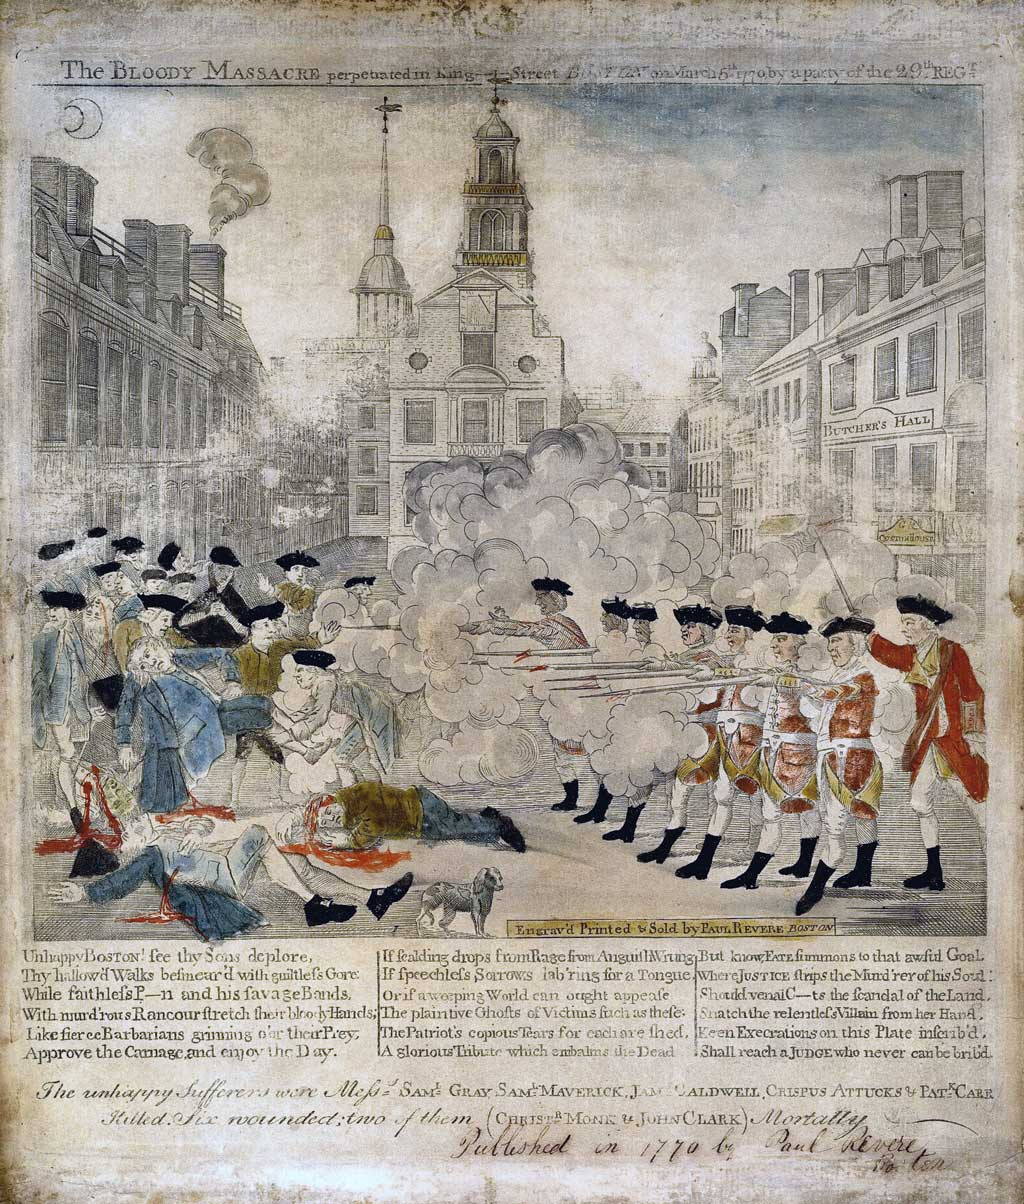 Engraved print showing a sensationalized portrayal of the skirmish, later to become known as the 'Boston Massacre,' between British soldiers and citizens of Boston on March 5, 1770. On the right a group of seven uniformed soldiers, on the signal of an officer, fire into a crowd of civilians at left. Three of the latter lie bleeding on the ground. Two other casualties have been lifted by the crowd. In the foreground is a dog; in the background are a row of houses, the First Church, and the Town House. Behind the British troops is another row of buildings including the Royal Custom House, which bears the sign 'Butcher's Hall.'